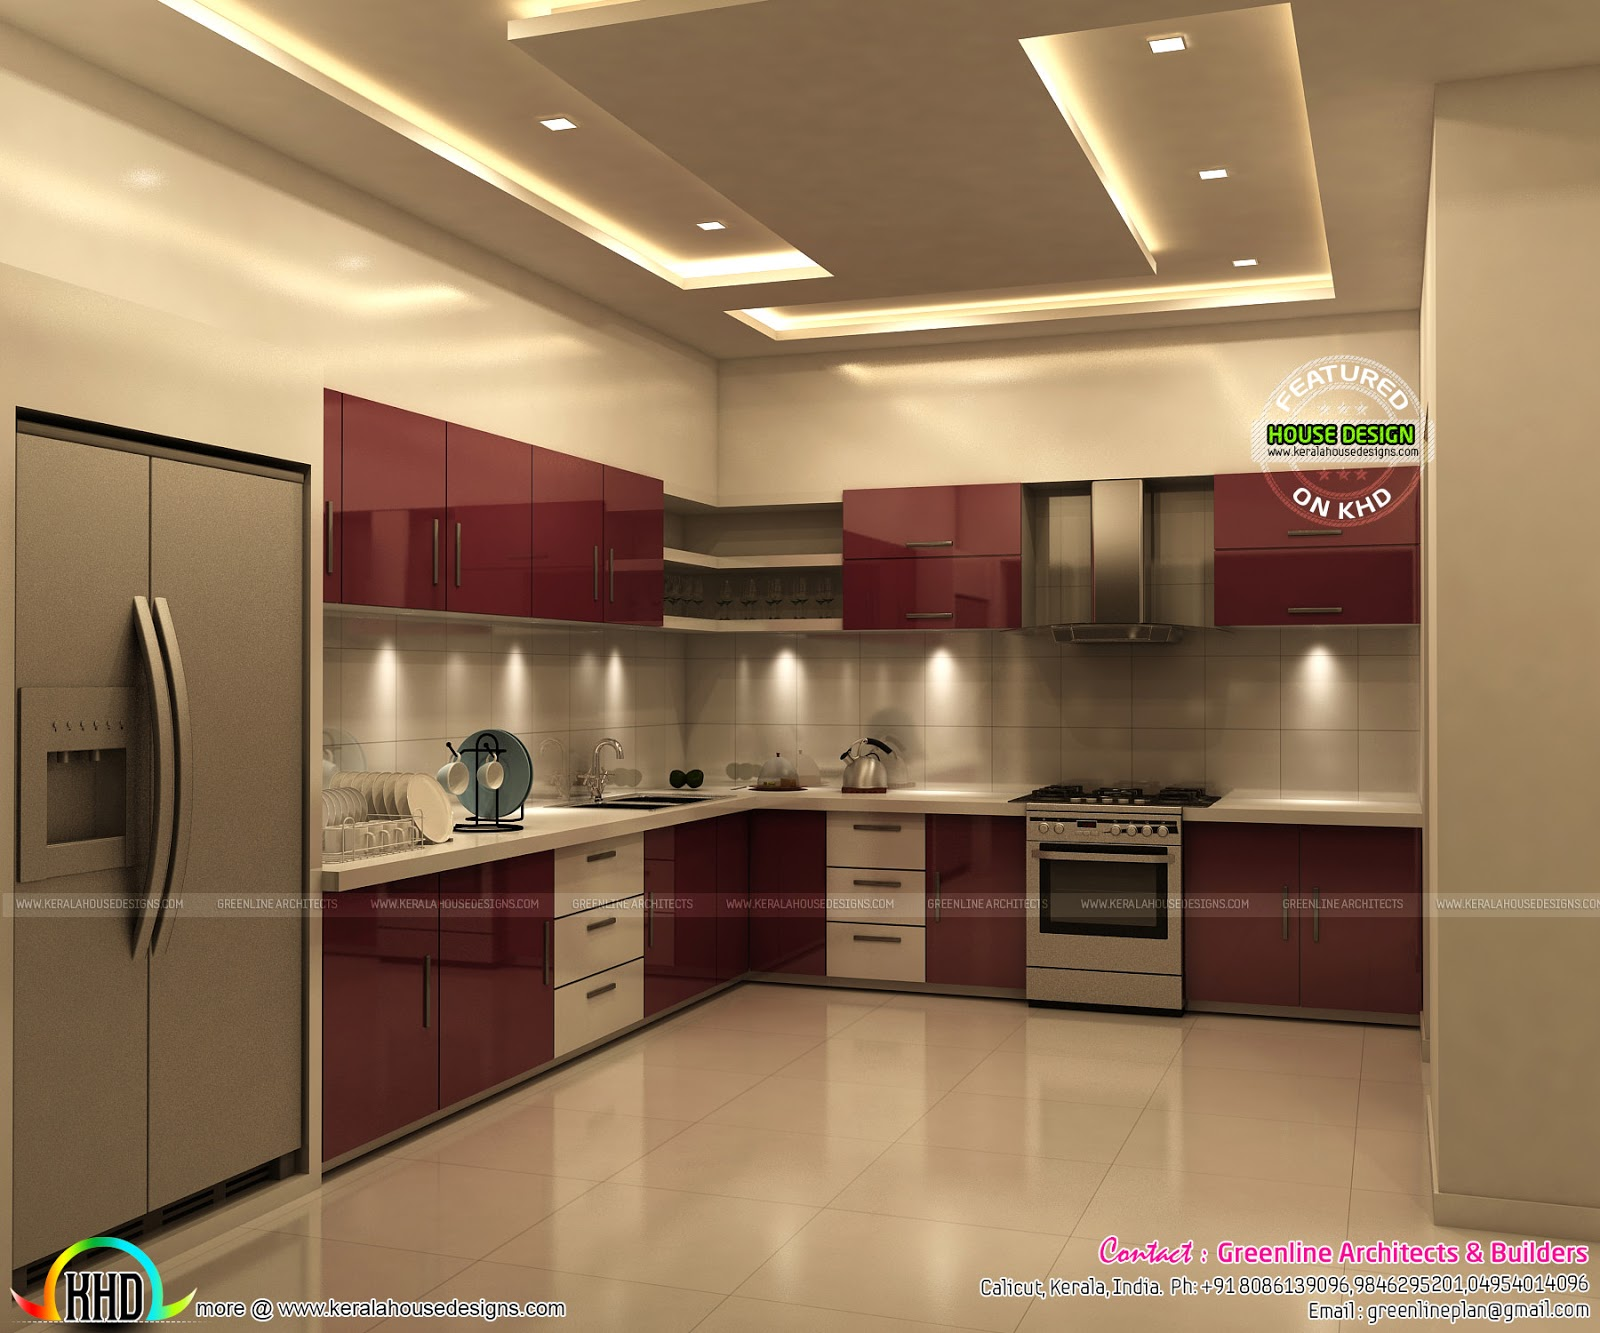 superb kitchen and bedroom interiors kerala home design and floor plans. Black Bedroom Furniture Sets. Home Design Ideas